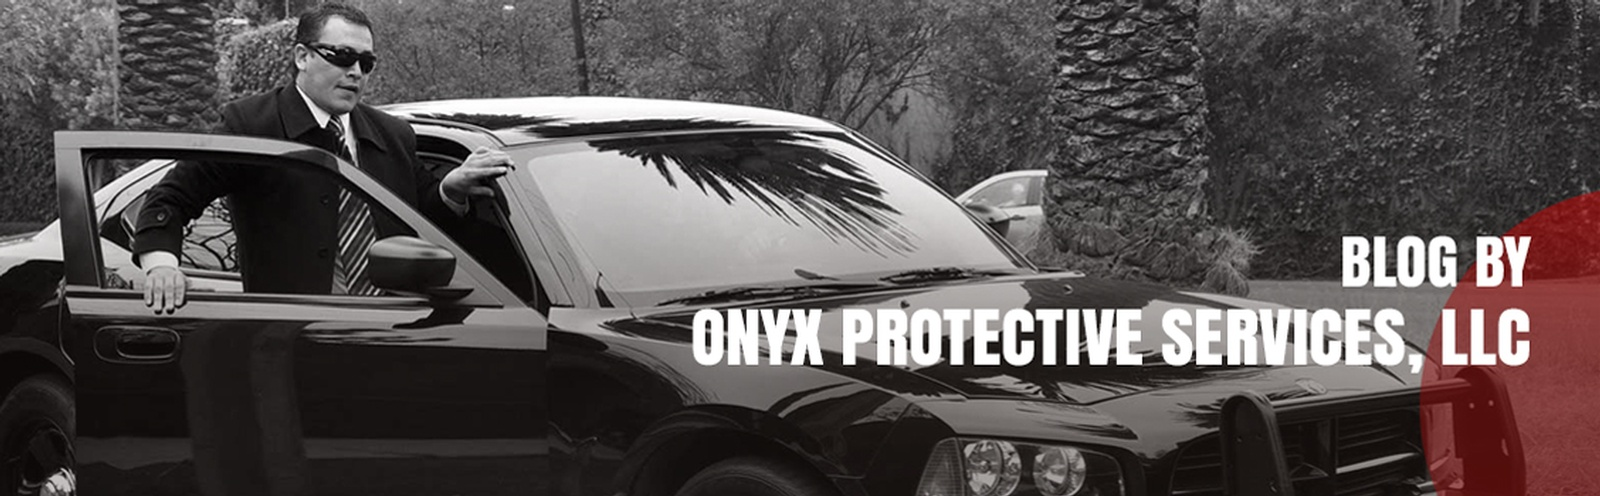 Blog | Security Guard Services Pembroke Pines, Hollywood, Miami FL